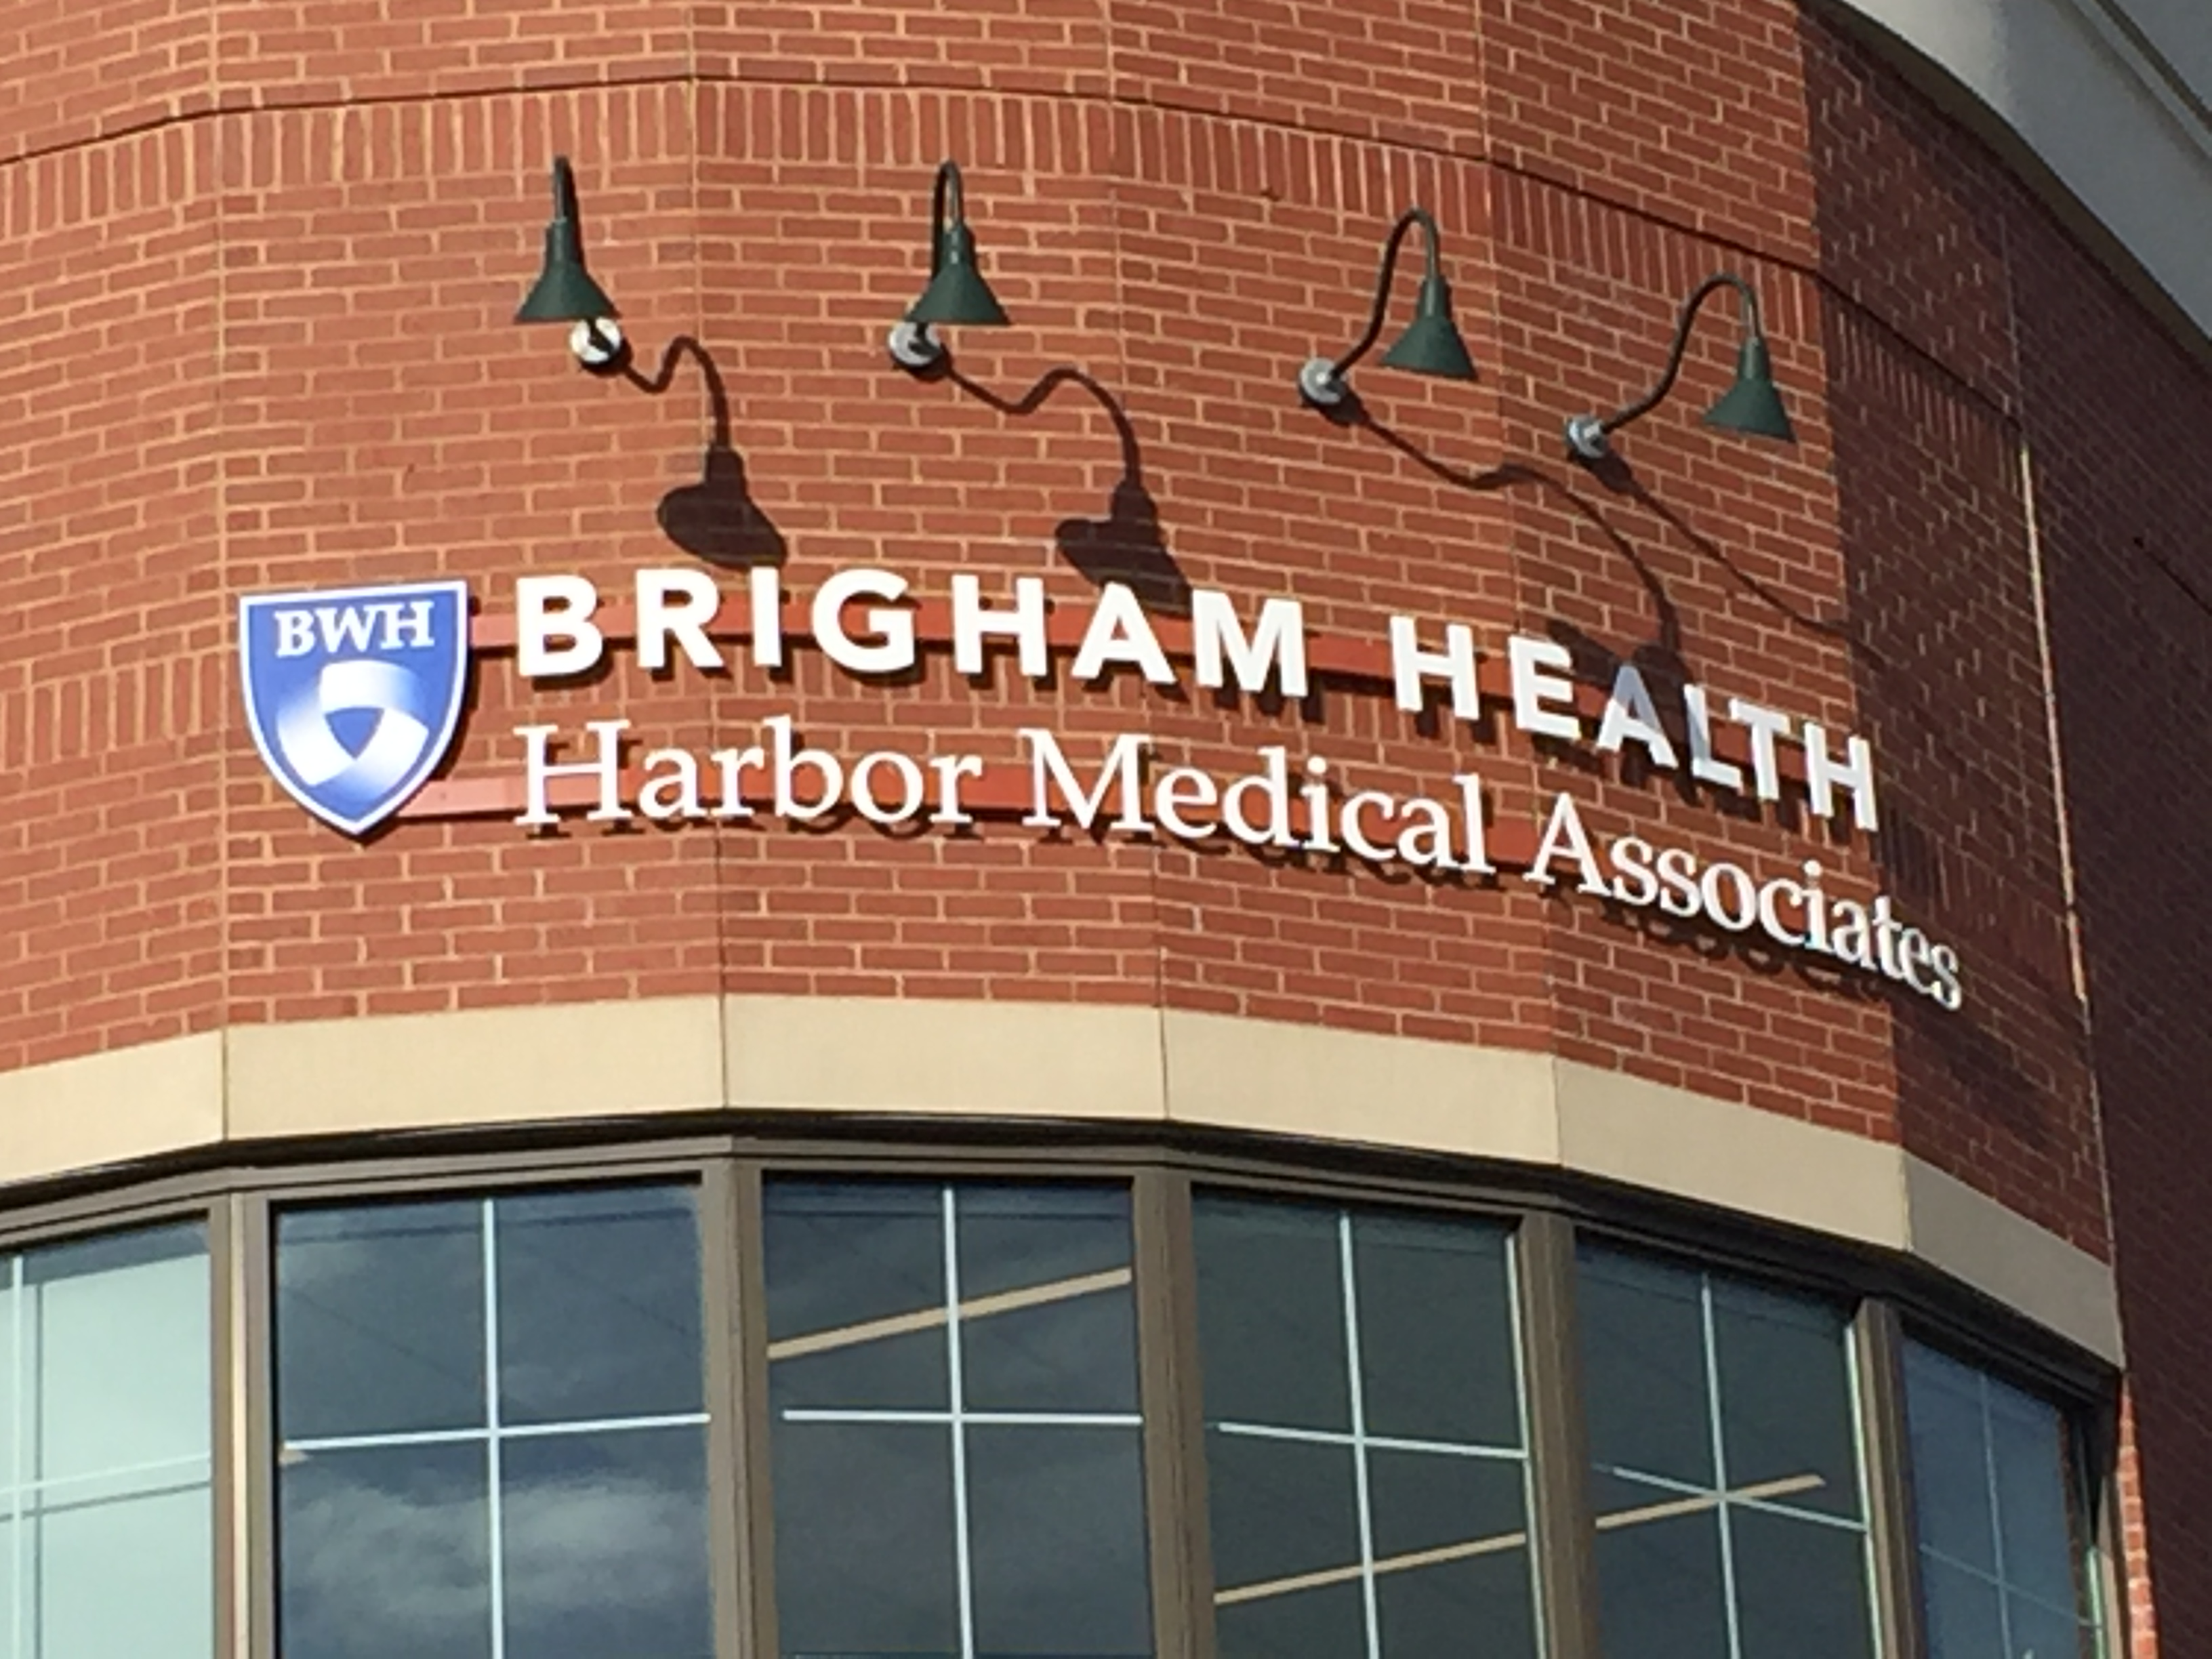 Brigham and Women's Harbor Medical Associates